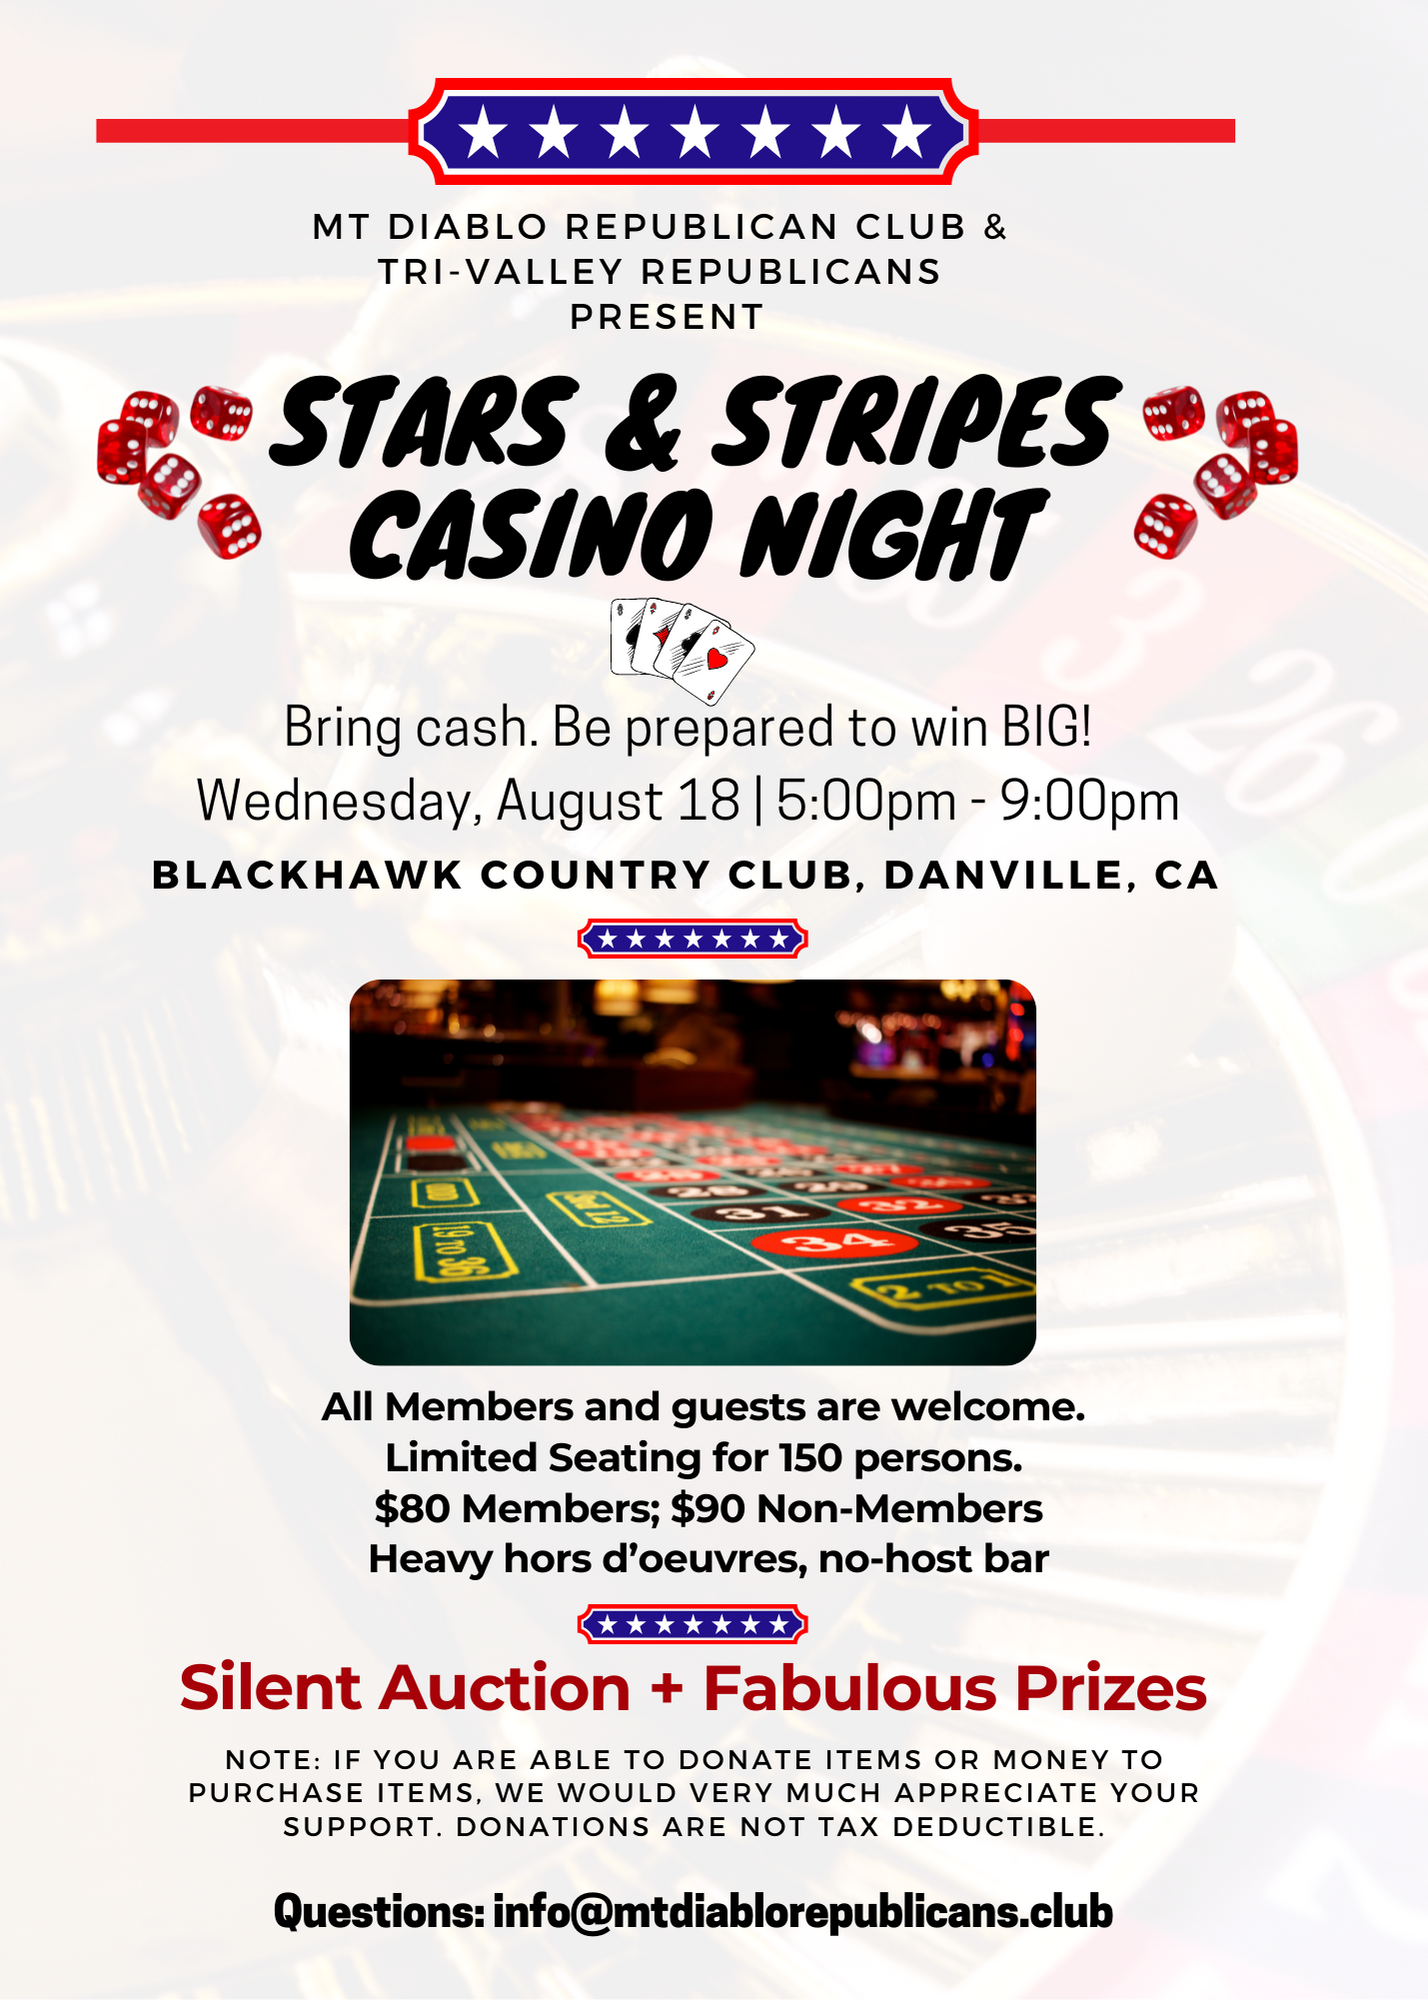 MDRC_Event_Flyers_Casino_Night_August_21.png